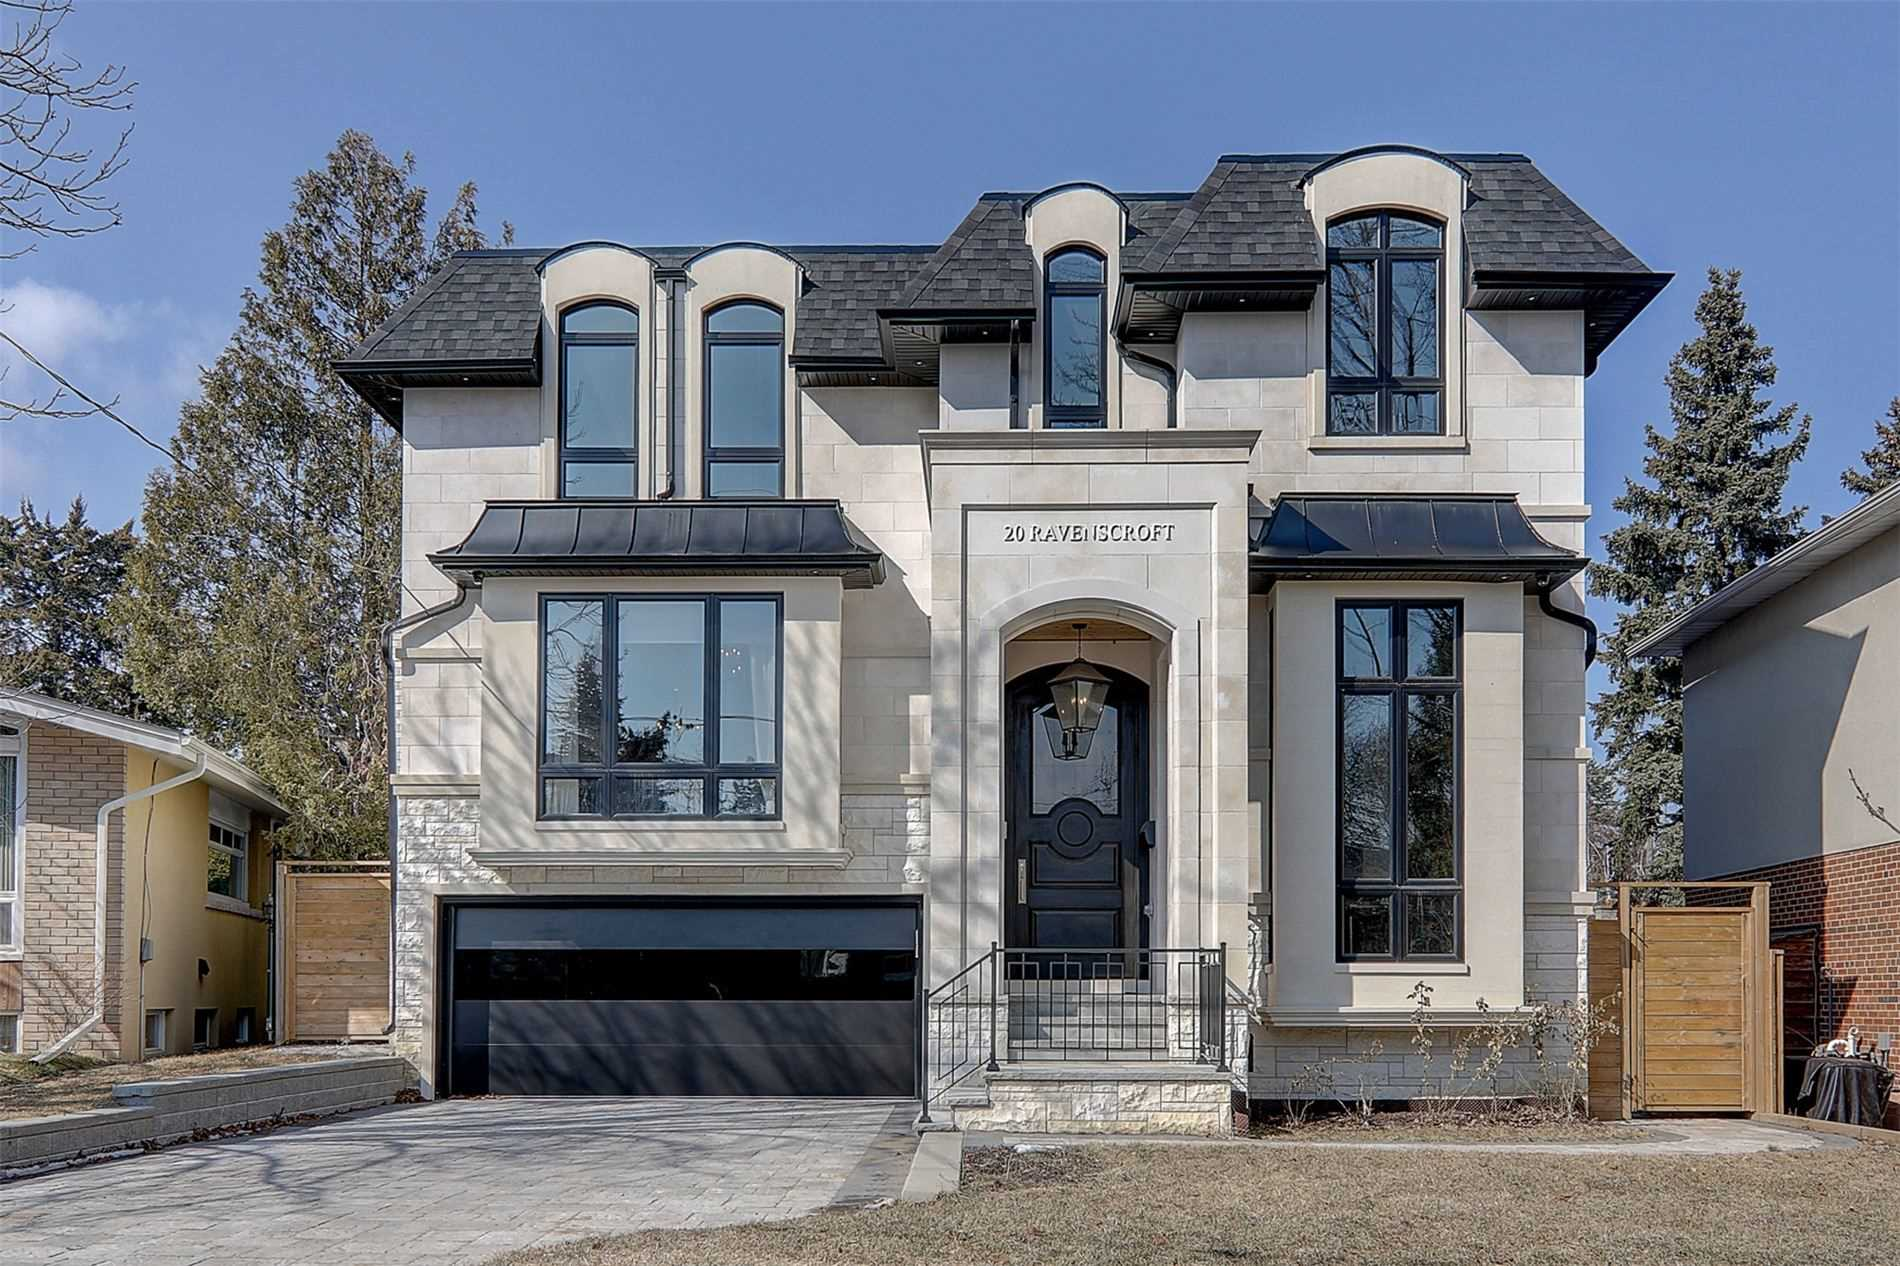 20 Ravenscroft Circ, Toronto, Ontario M2K1W9, 4 Bedrooms Bedrooms, 10 Rooms Rooms,5 BathroomsBathrooms,Detached,For Sale,Ravenscroft,C5171396